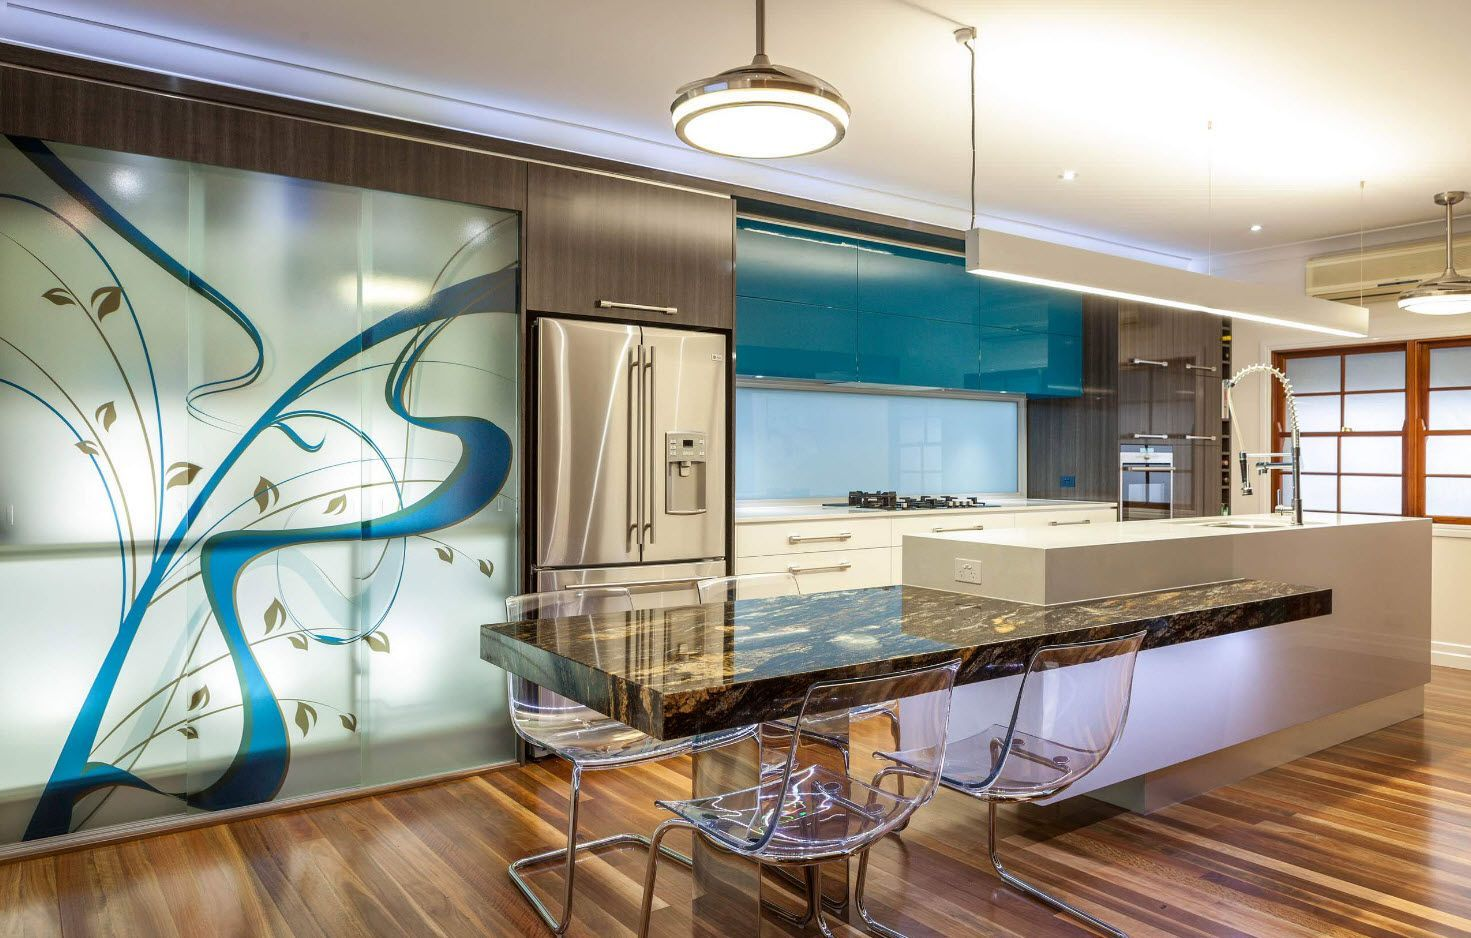 Mirroring and glass surfaces for successful kitchen design 2017